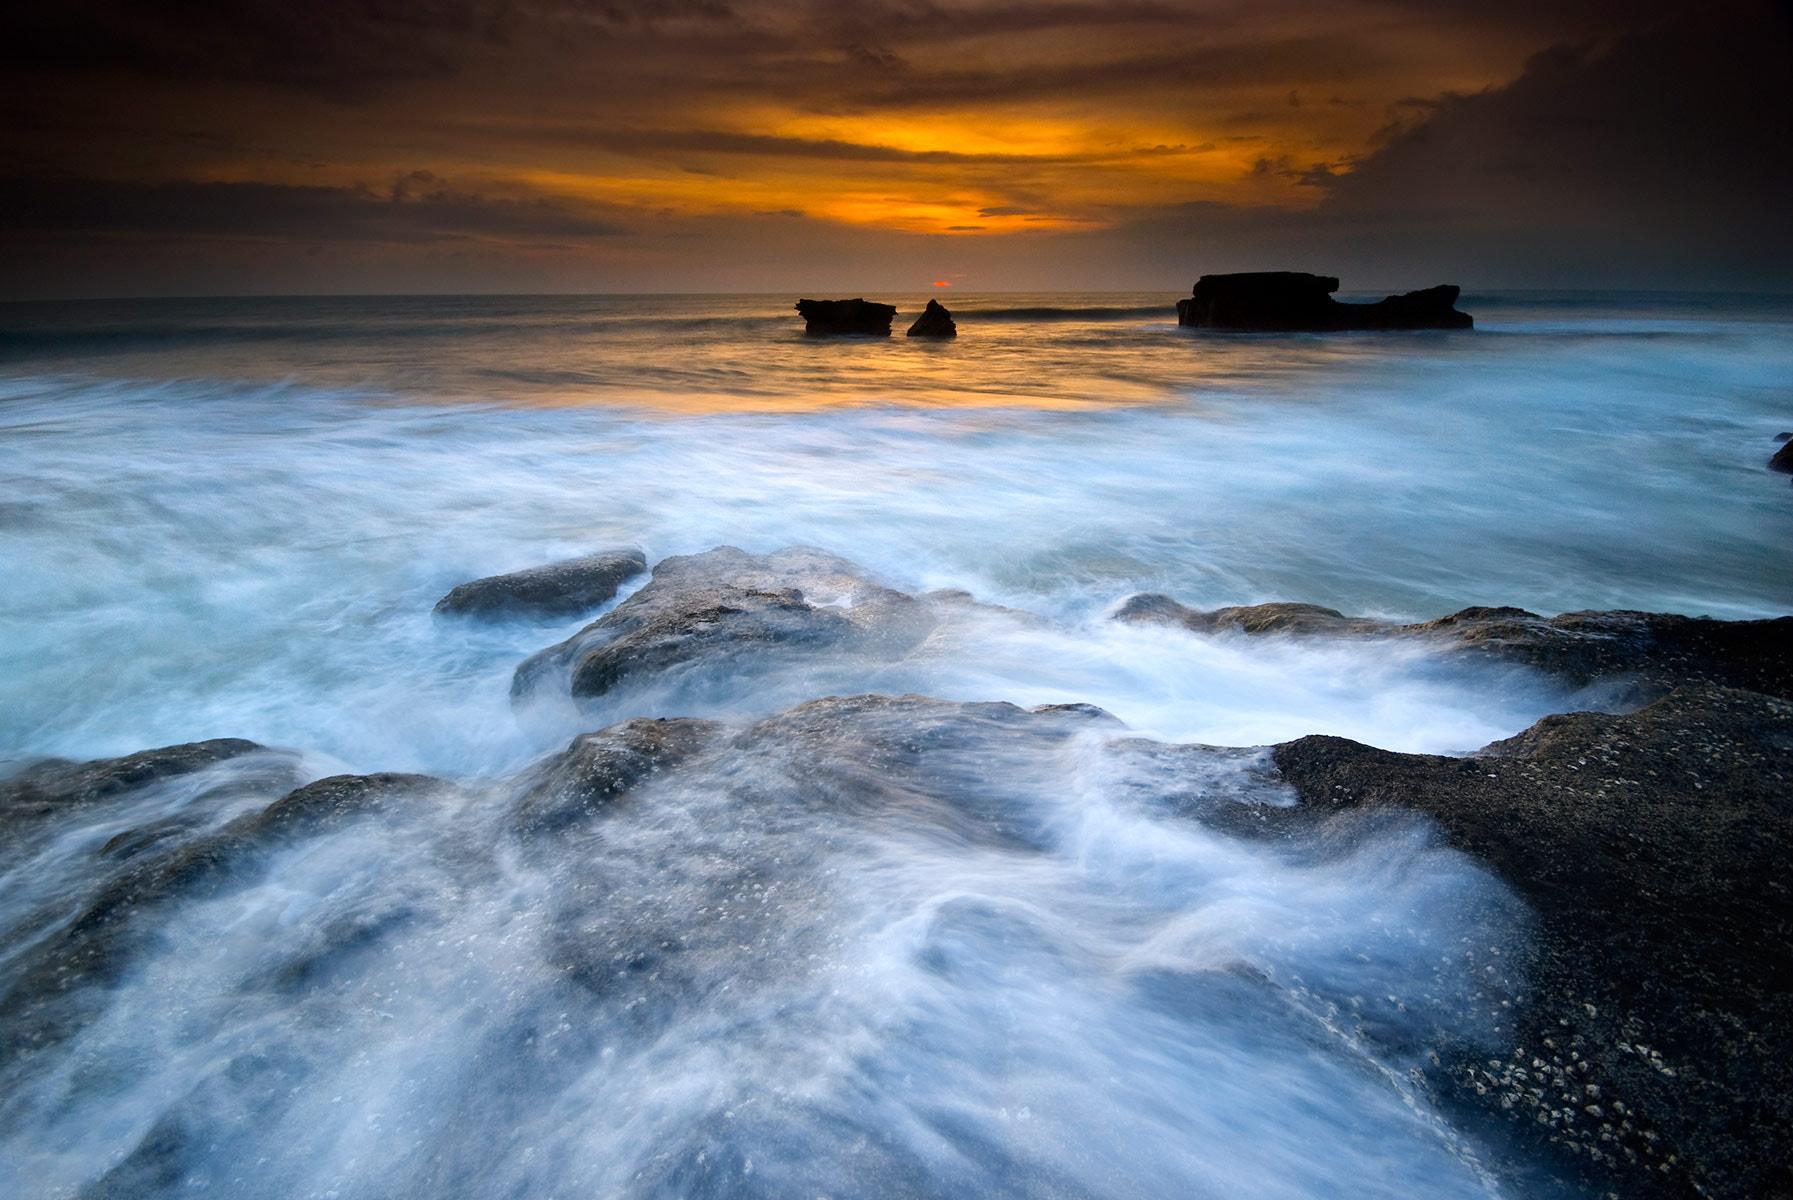 Photograph Waves Invasion by Ng Hock How on 500px